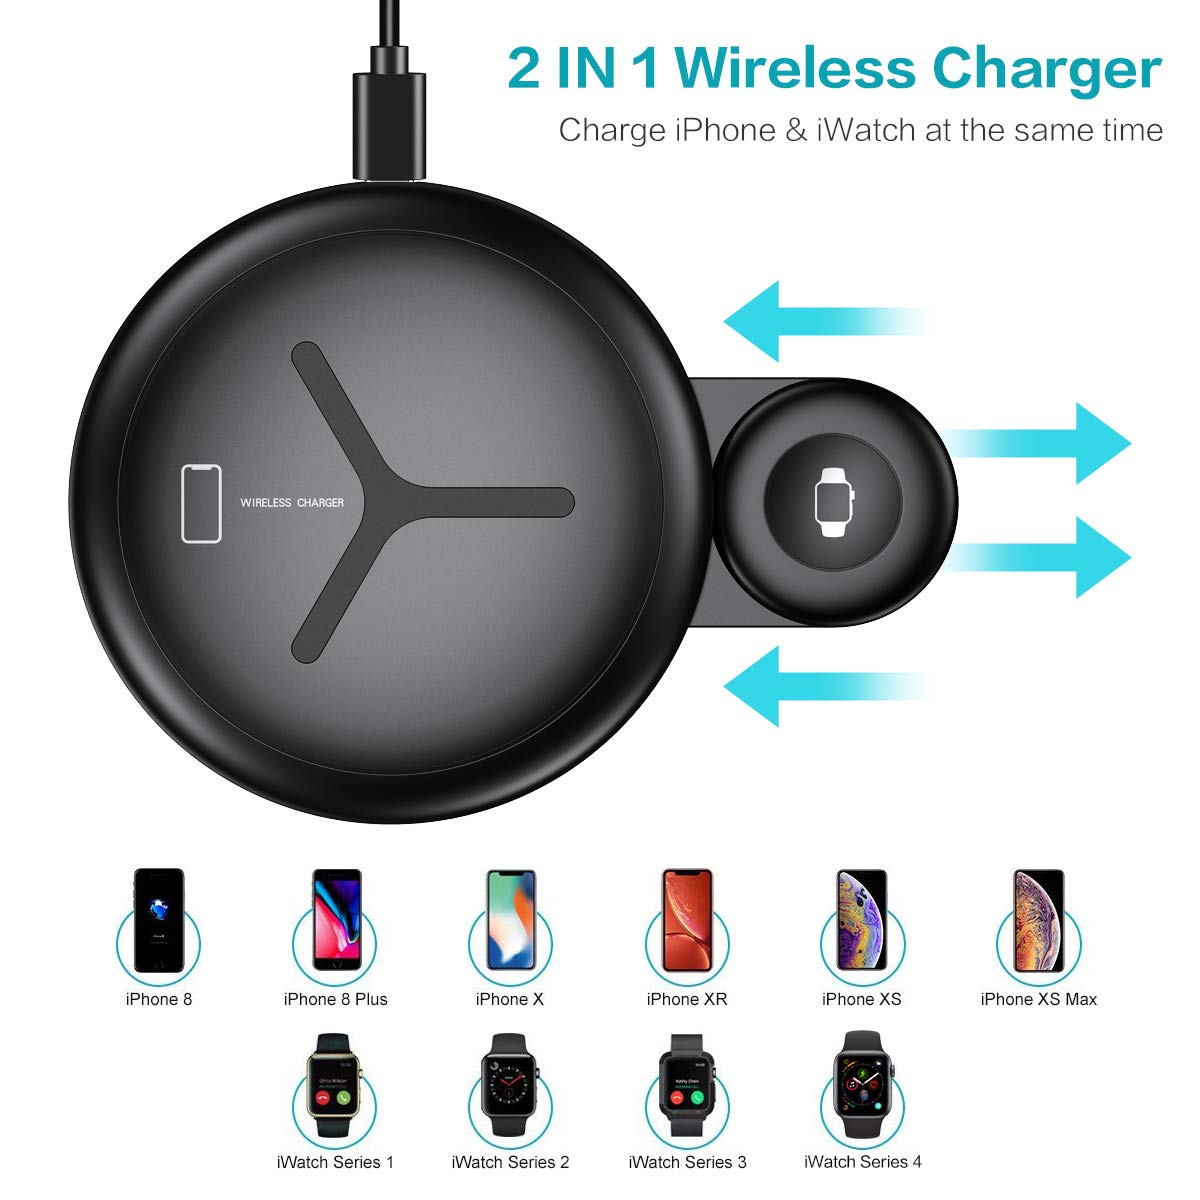 2 in 1 10W Qi Fast Wireless Charger for iWatch for iPhone Xs Max/XR/X/8 Plus/8 Samsung Note 9/8 and More - FLOVEME